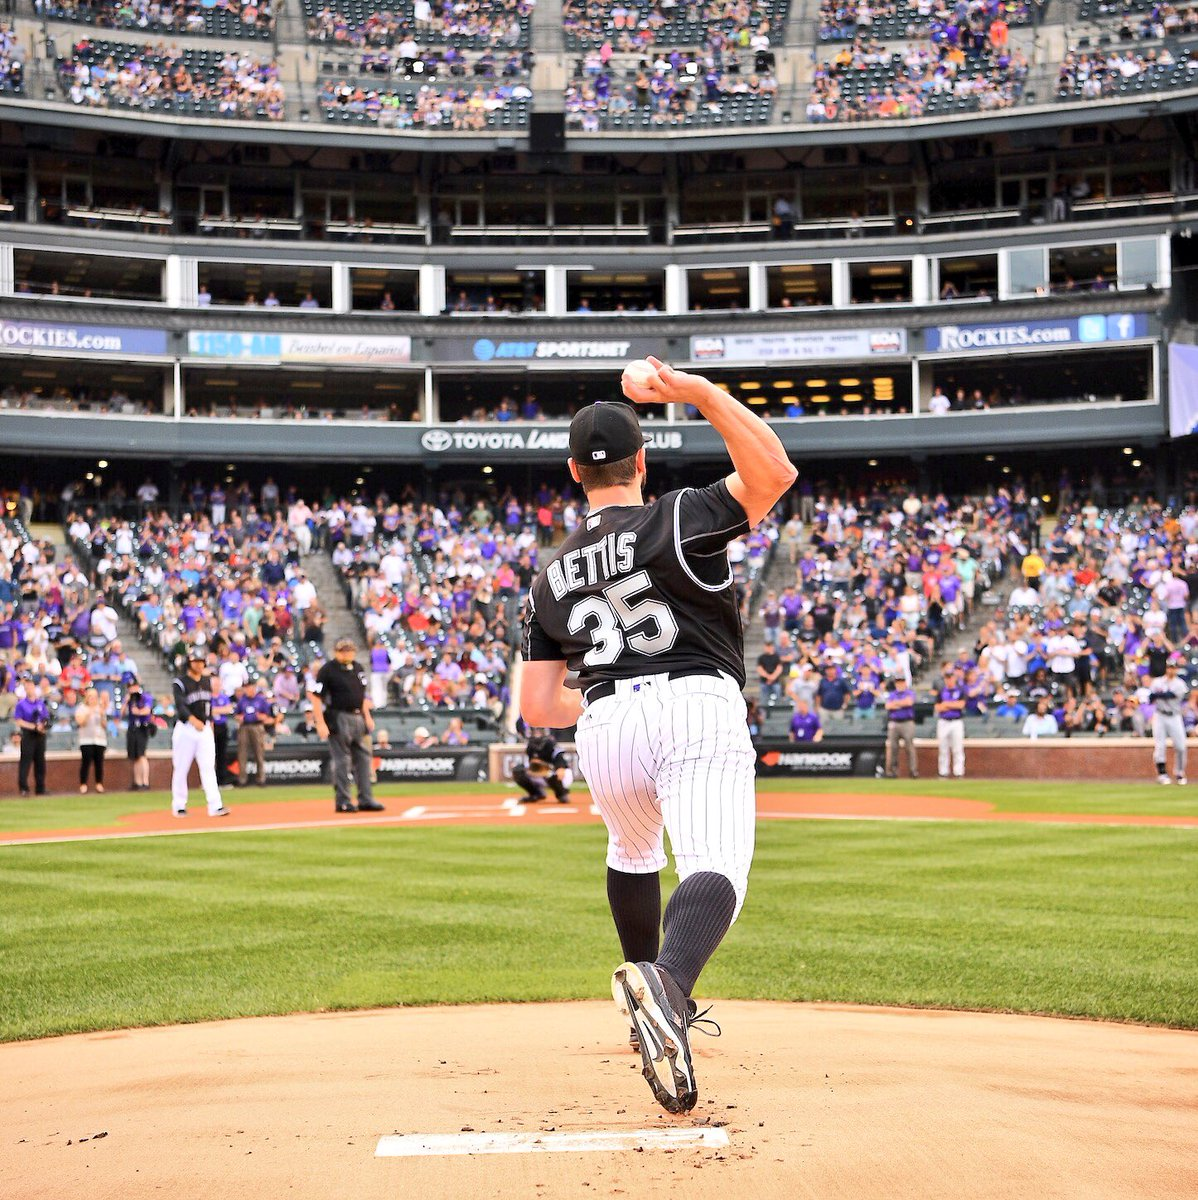 THE ONLY SCORE THAT MATTERS TONIGHT  Chad Bettis: ☝️ Cancer: 0 https://t.co/Y4wV3JDAi9